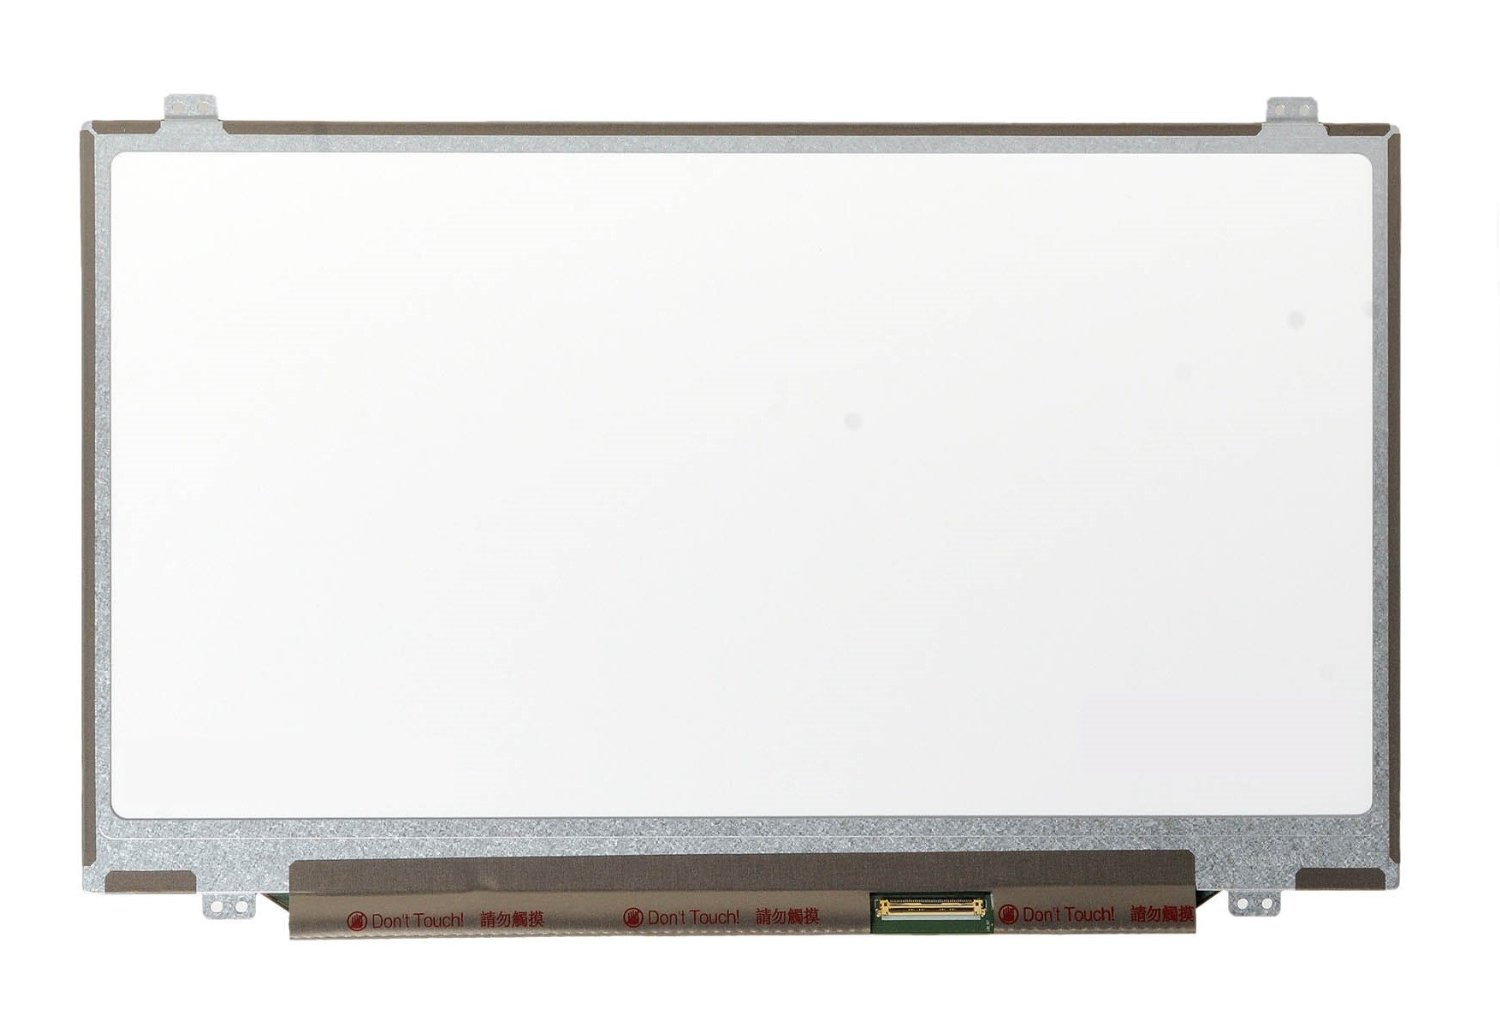 QuYing Laptop LCD Screen for Acer ASPIRE VN7-791G VN7-792G SERIES (17.3 inch 1920x1080 30pin N) quying laptop lcd screen for acer aspire ethos 5951g timeline 5745 7531 series 15 6 inch 1366x768 40pin n